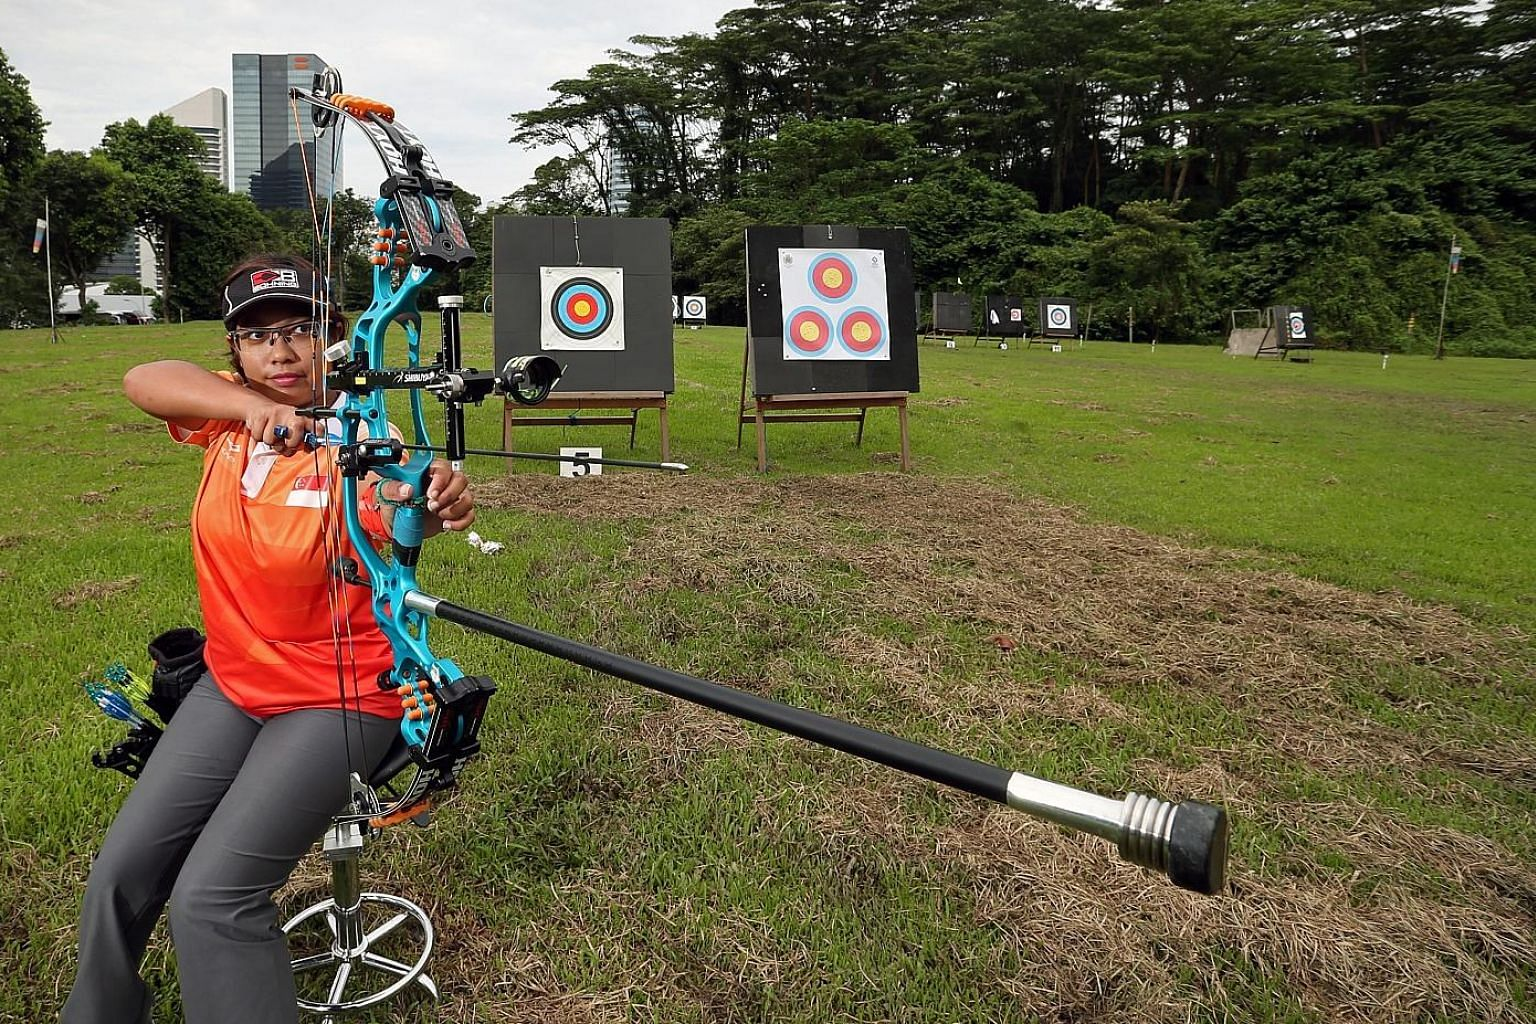 Nur Syahidah Alim, who won a gold in the World Archery Para Championships in June, is aiming for a podium spot at next year's Paralympics.